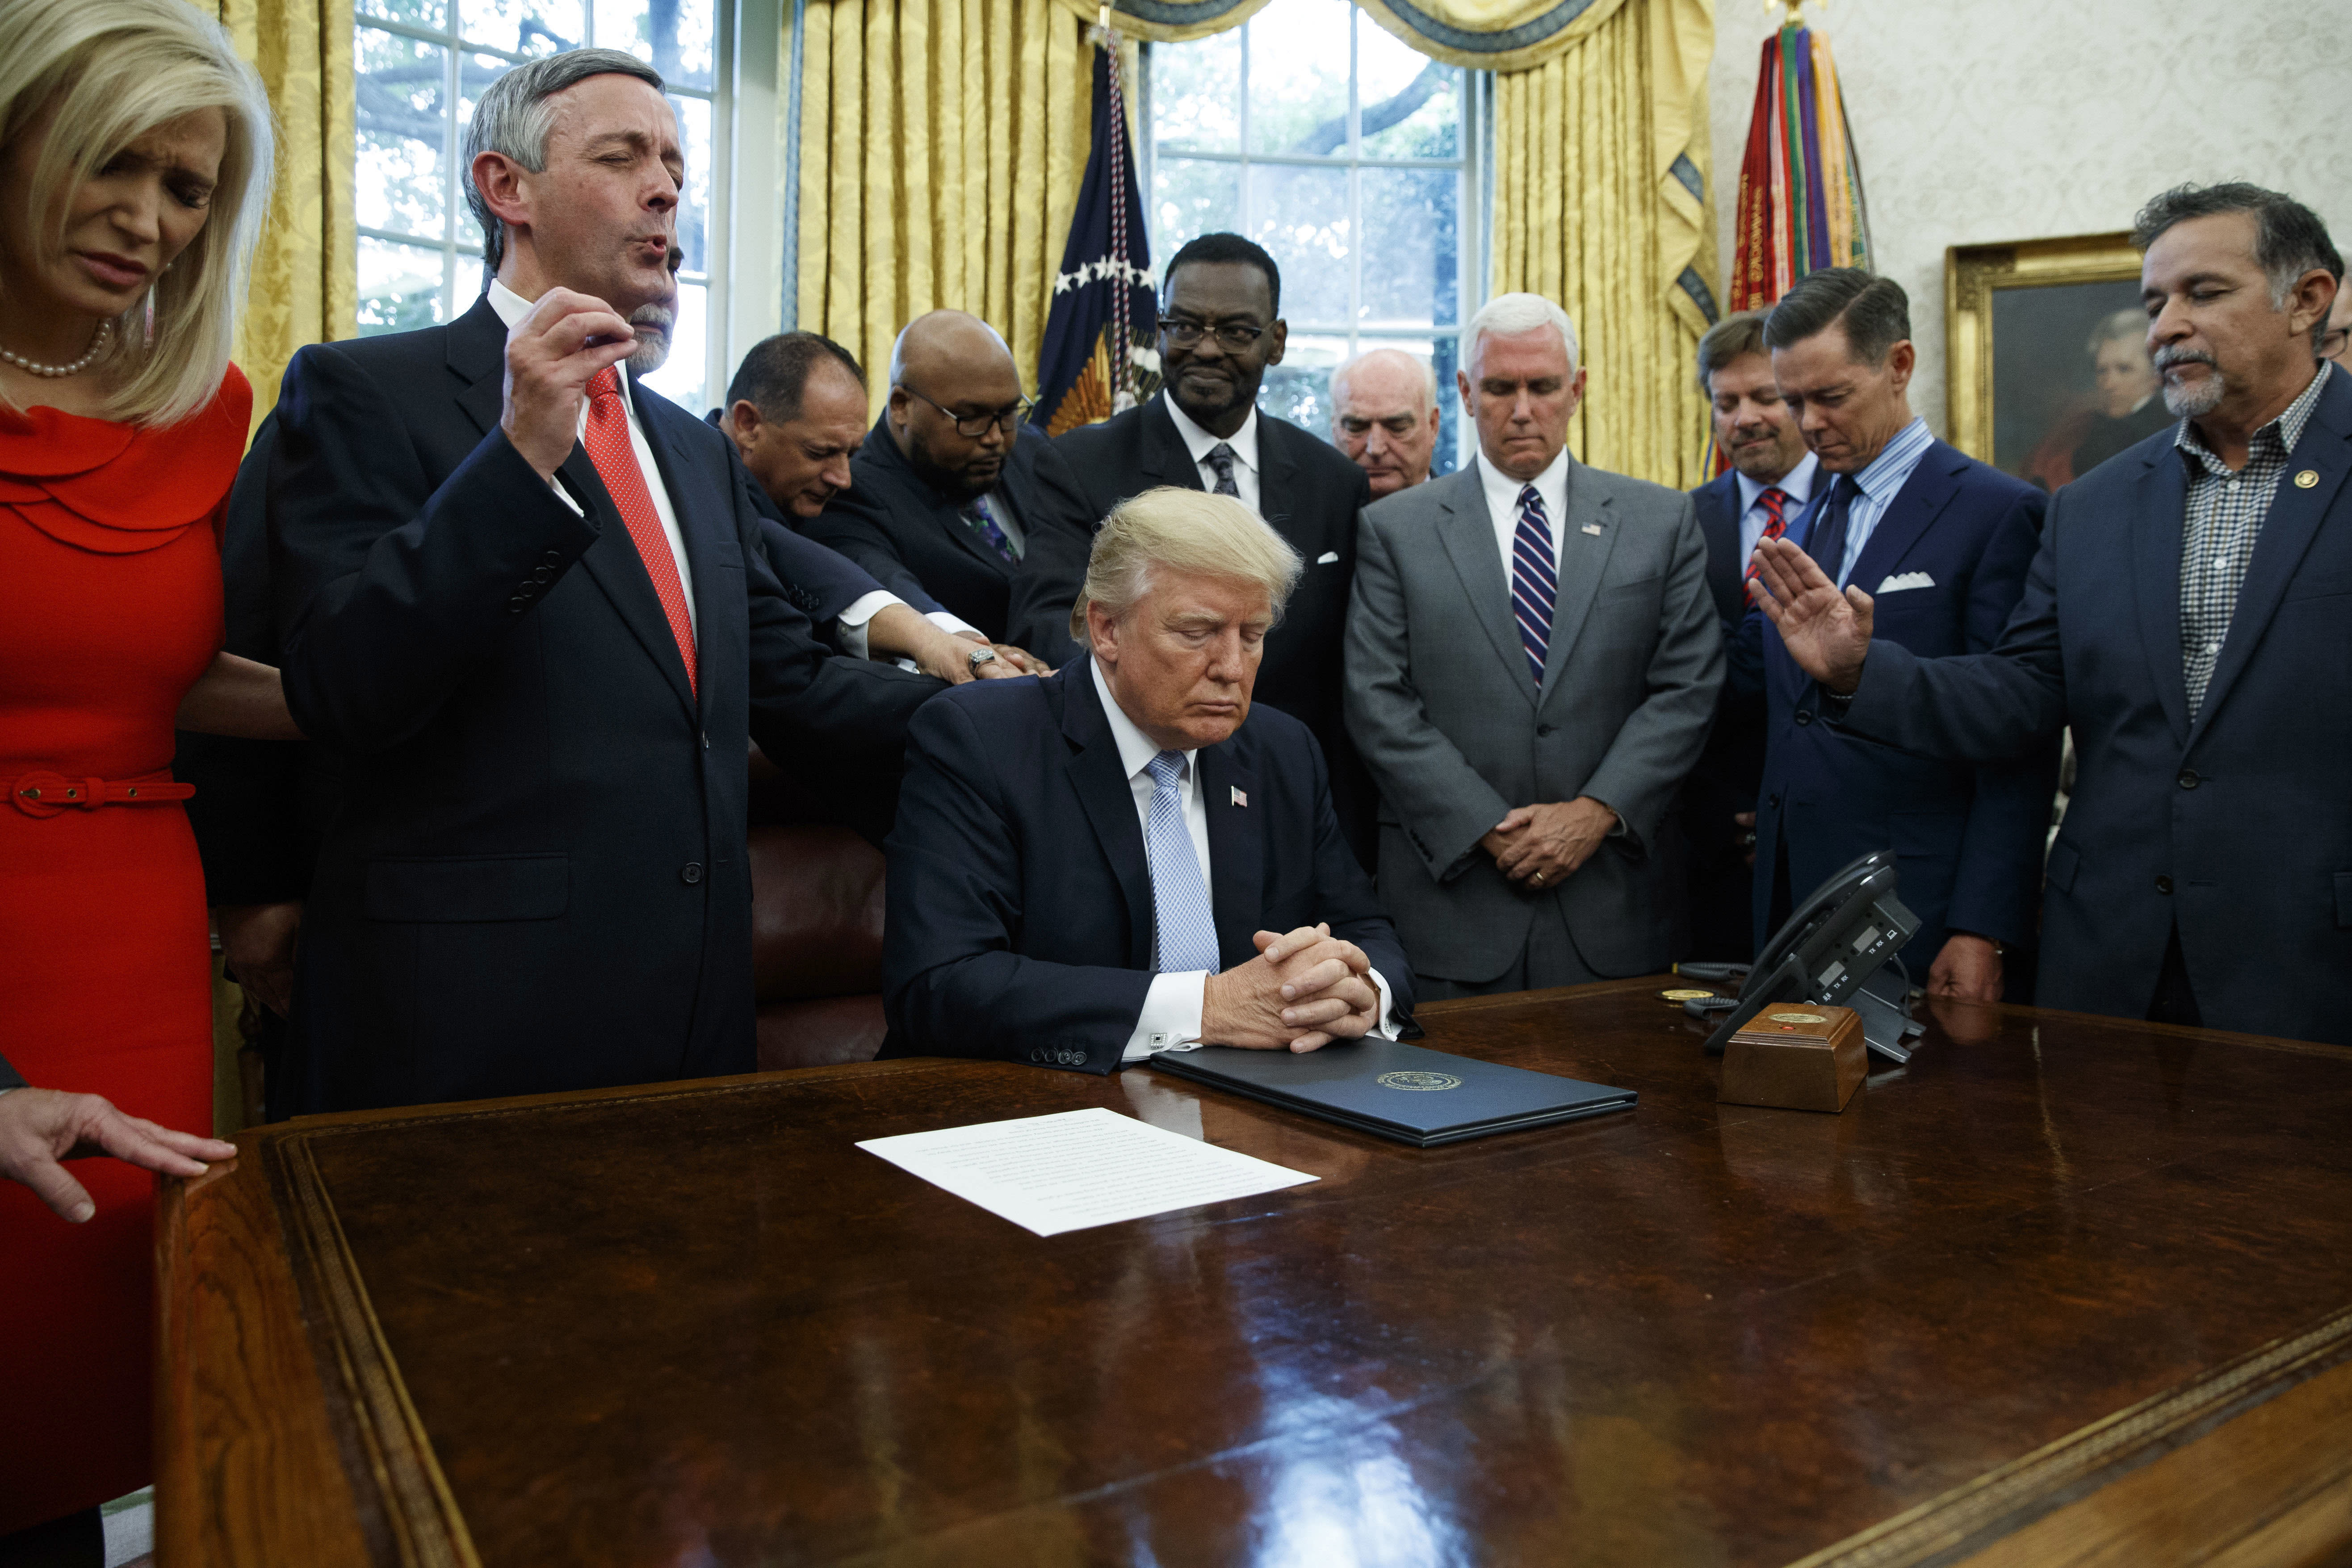 FILE - In this Sept. 1, 2017 file photo, religious leaders pray with President Donald Trump after he signed a proclamation for a national day of prayer to occur on Sunday, Sept. 3, 2017, in the Oval Office of the White House in Washington. Religion's role in politics and social policies is in the spotlight heading toward the midterm elections, yet relatively few Americans consider it crucial that a candidate be devoutly religious or share their religious beliefs, according to an AP-NORC national poll conducted Aug. 16-20, 2018. (AP Photo/Evan Vucci)